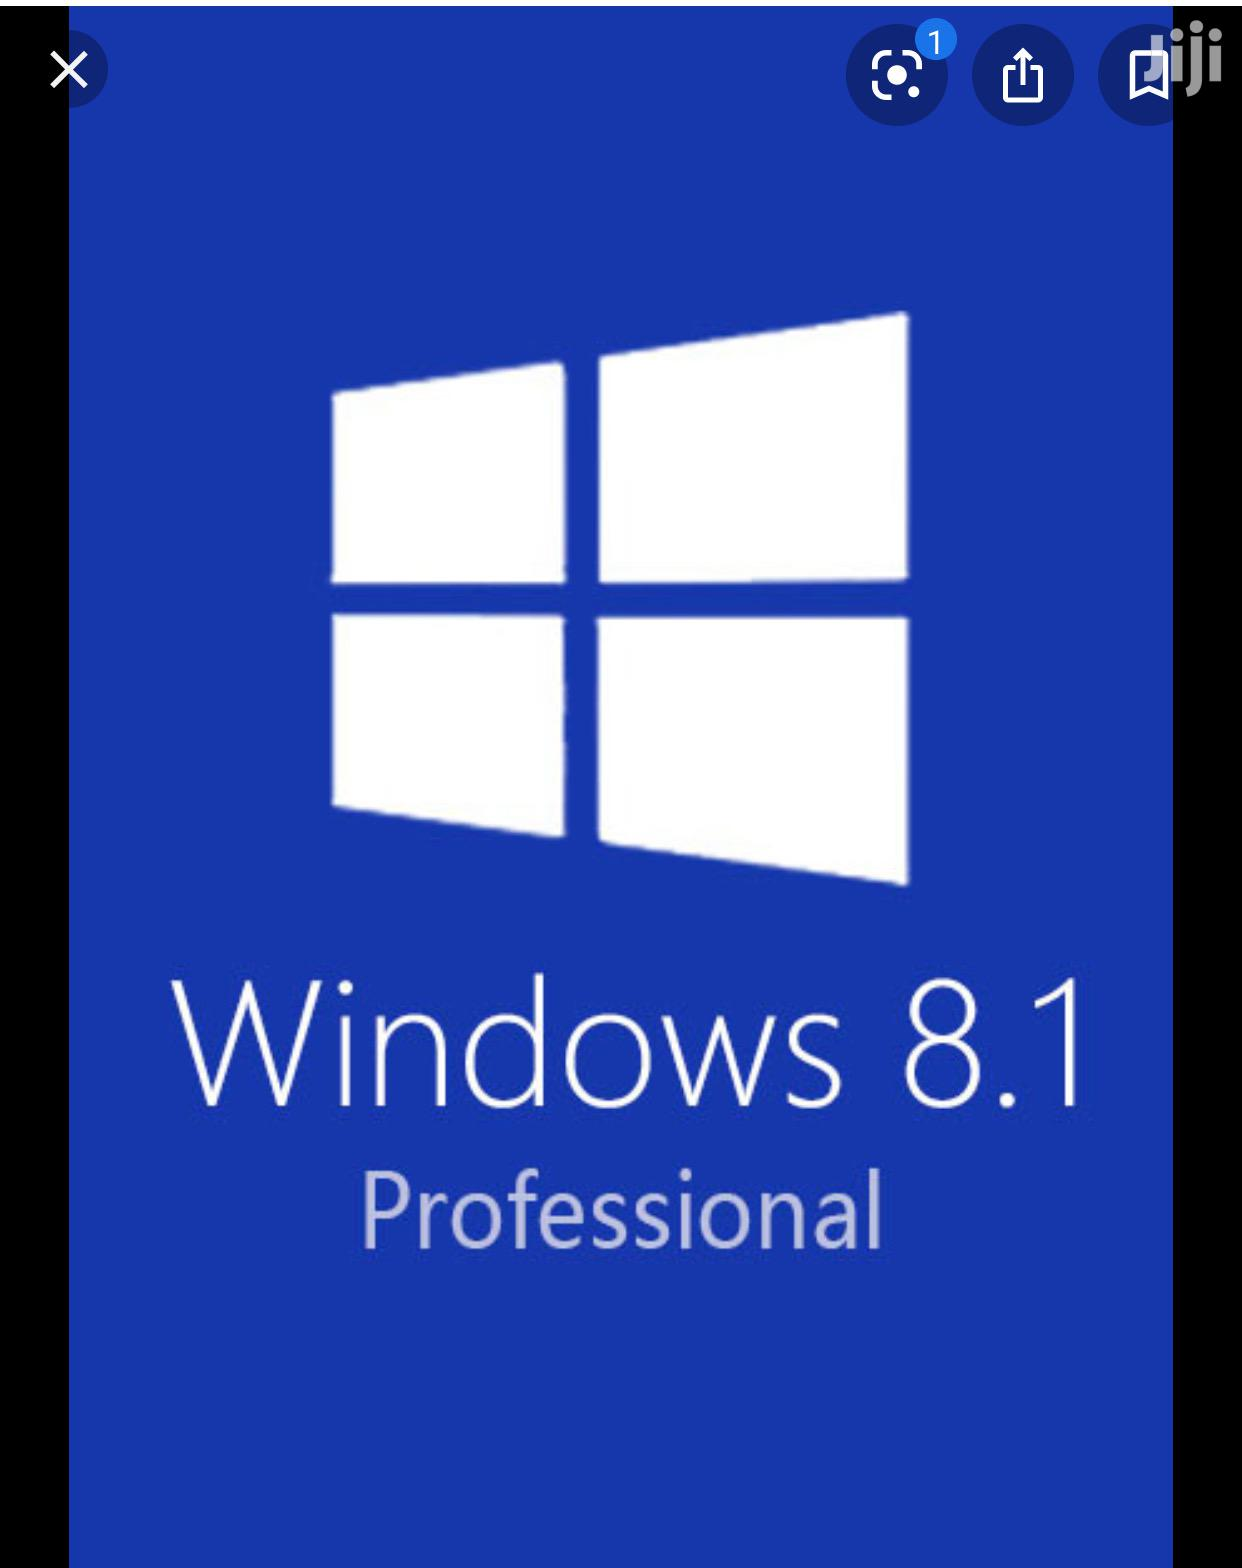 Windows 8.1 Pro Licenses 1user | Software for sale in Darkuman, Greater Accra, Ghana